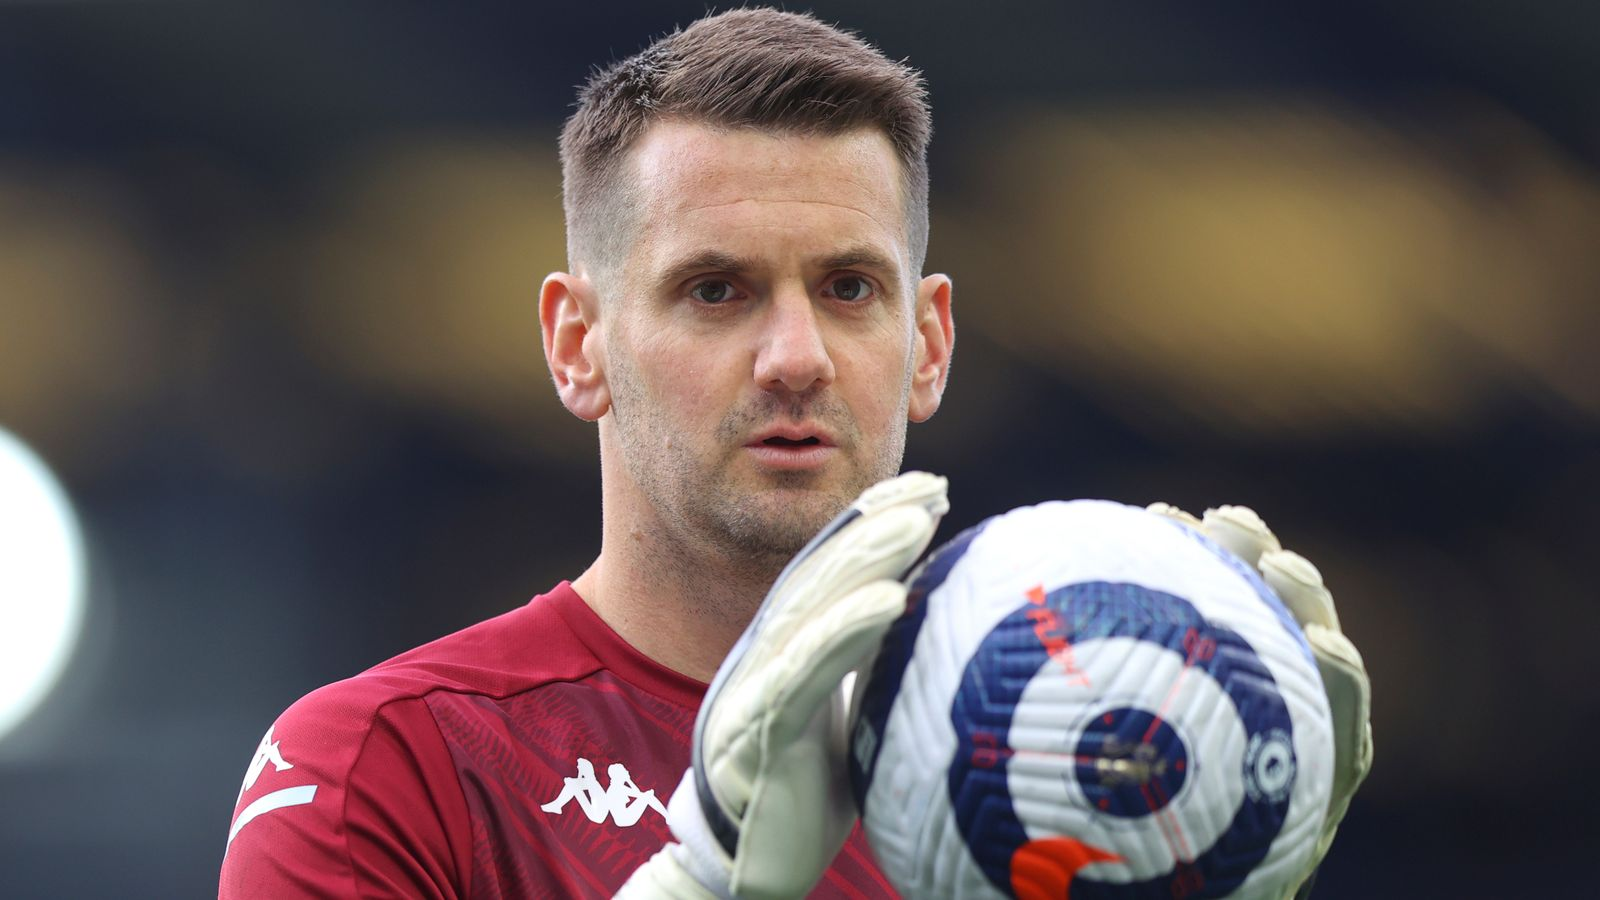 Tom Heaton: Manchester United sign free agent goalkeeper after Aston Villa  contract expires | Football news - Insider Voice